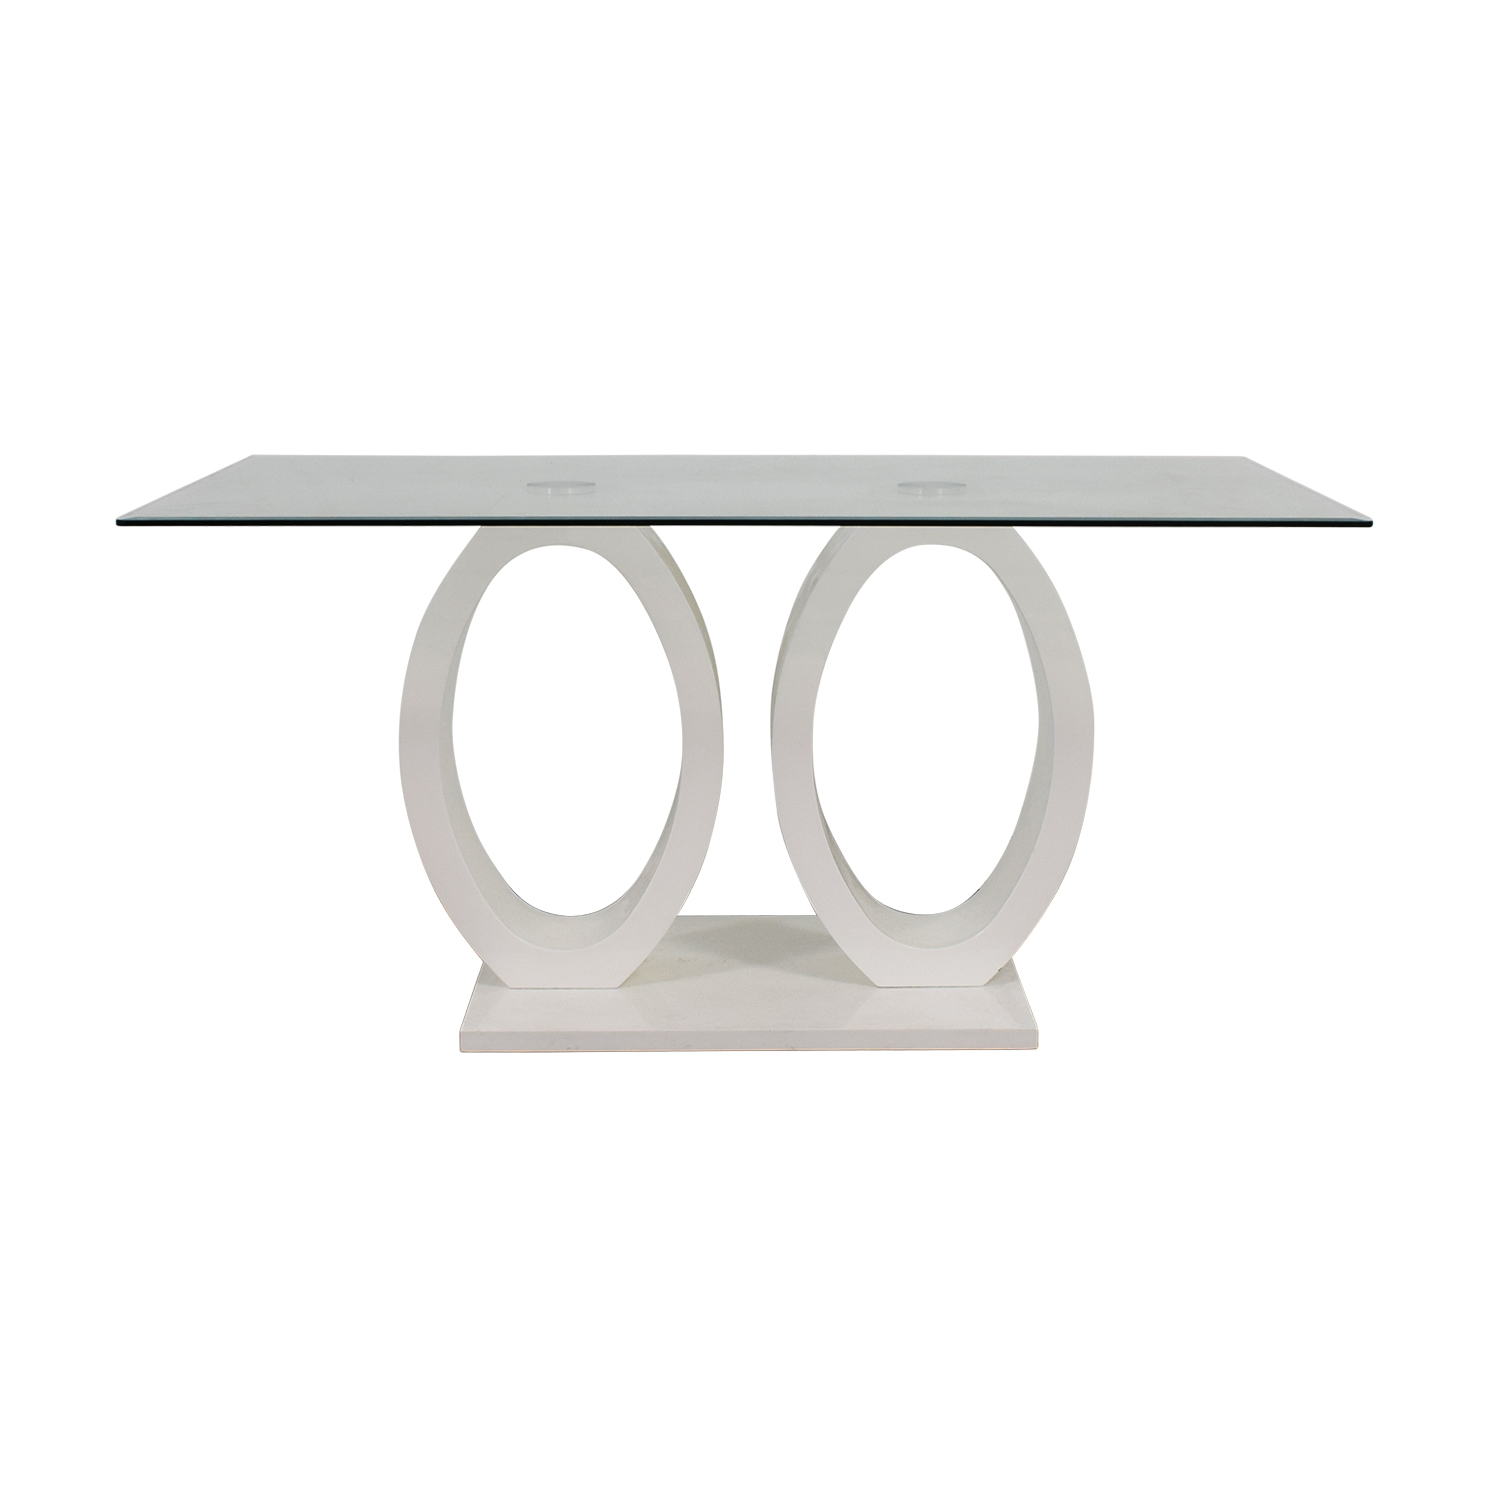 White Oval Rings and Rectangular Glass Contemporary Table / Dinner Tables